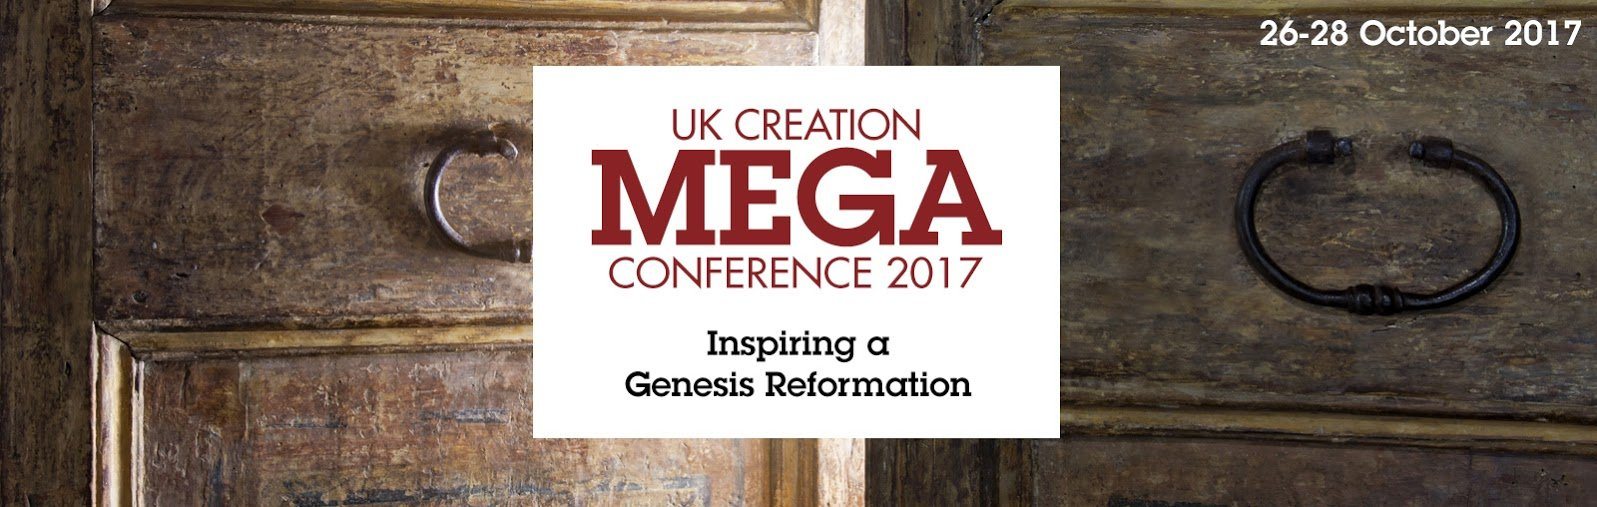 UK Creation Mega Conference 2017